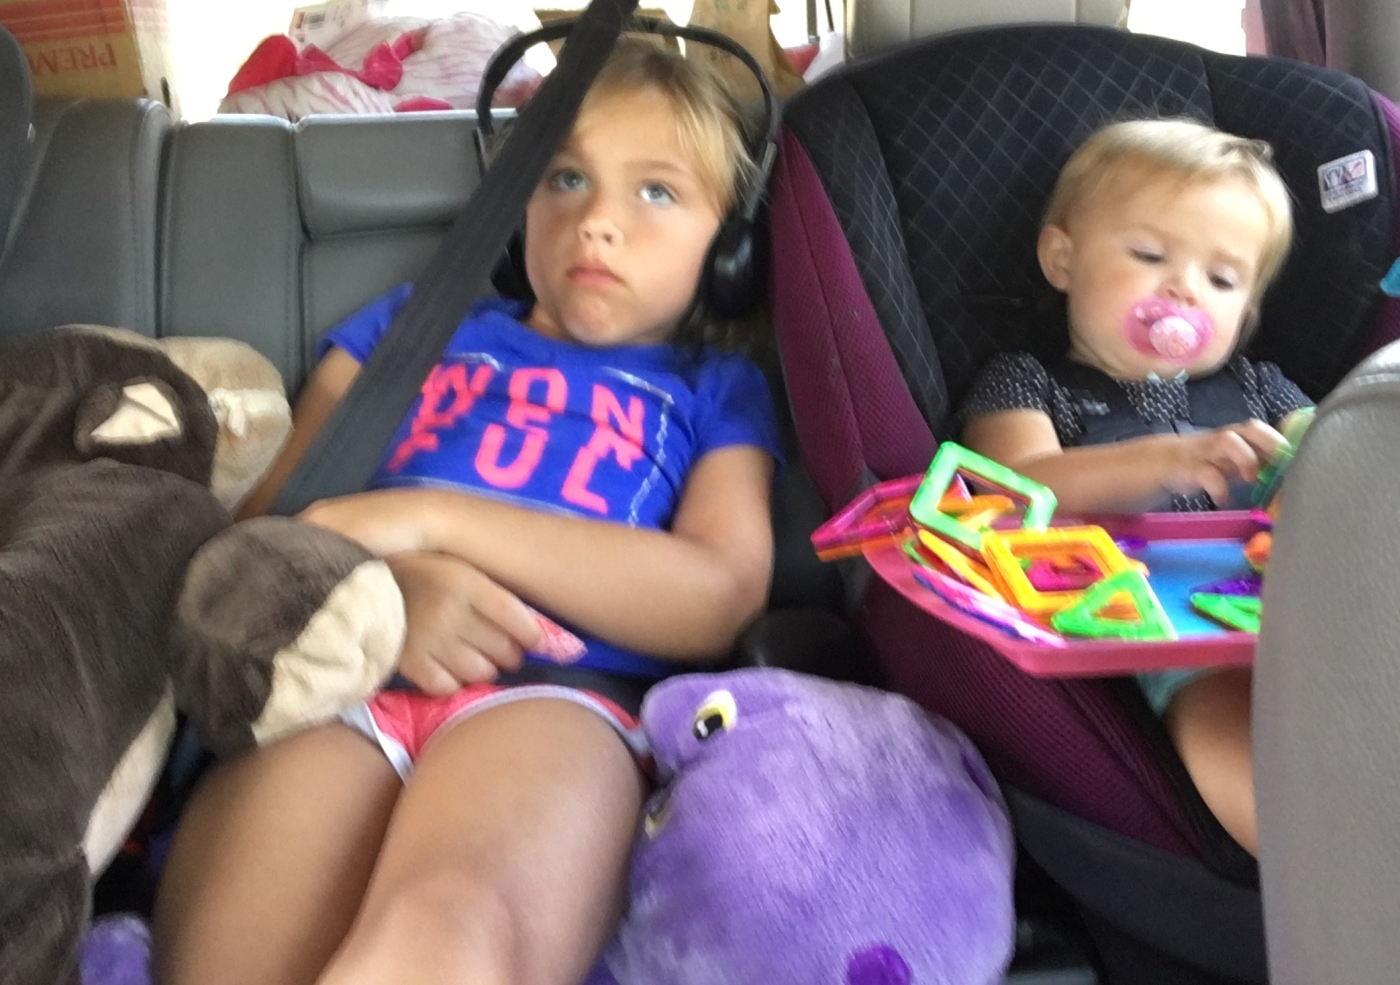 Road tripping with the kids: what to bring